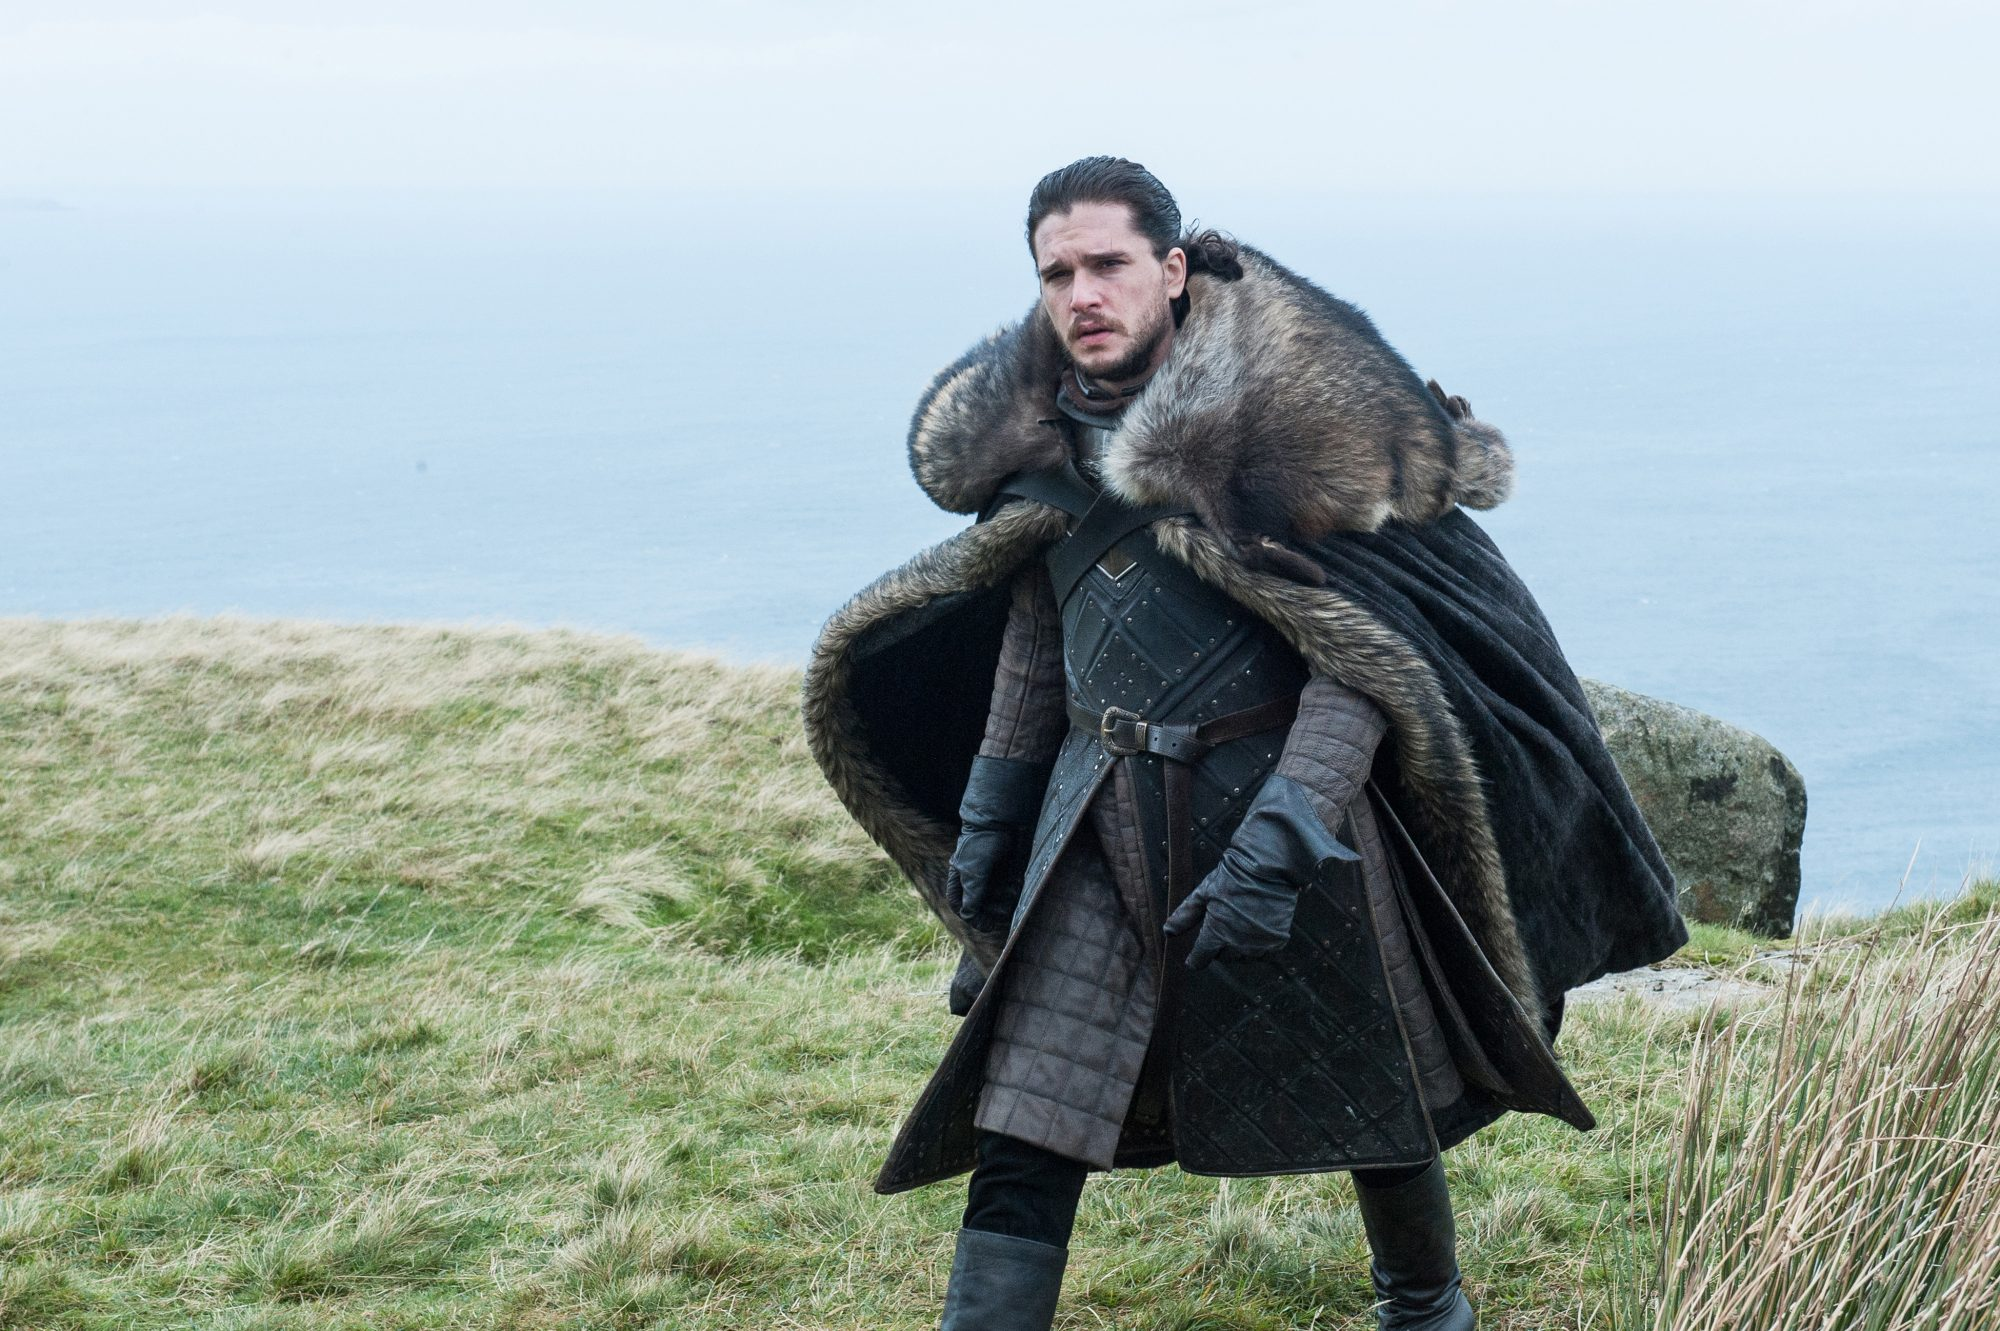 081517-jon-snow-fur-cape-lead1